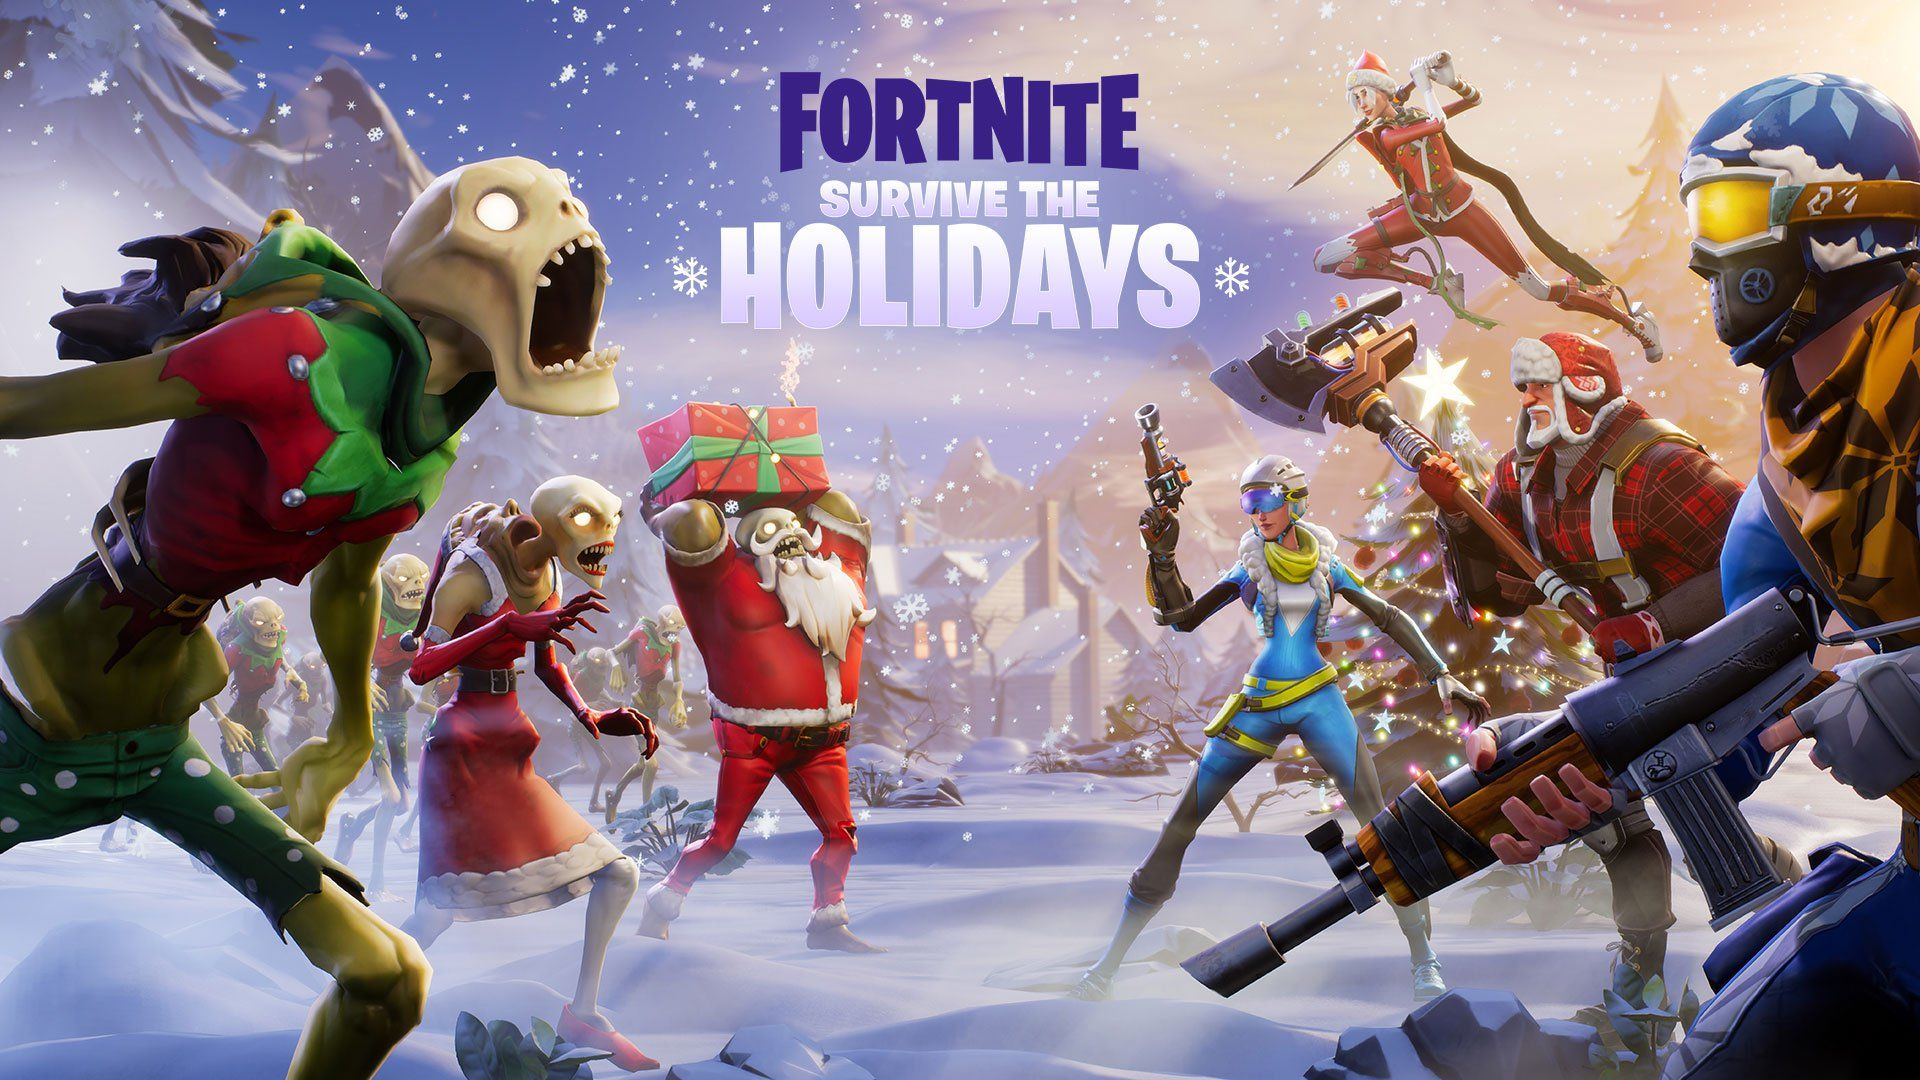 Fornite S Survive The Holidays Event And Battle Royale Battle